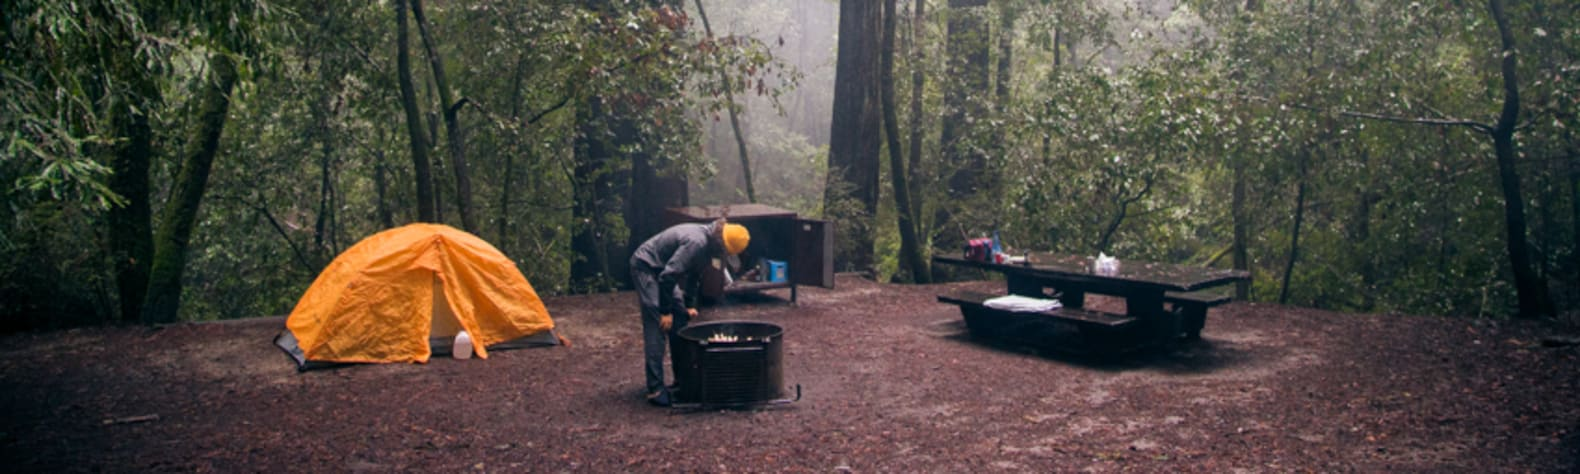 20 Best Campsites in and Near Big Basin Redwoods State Park